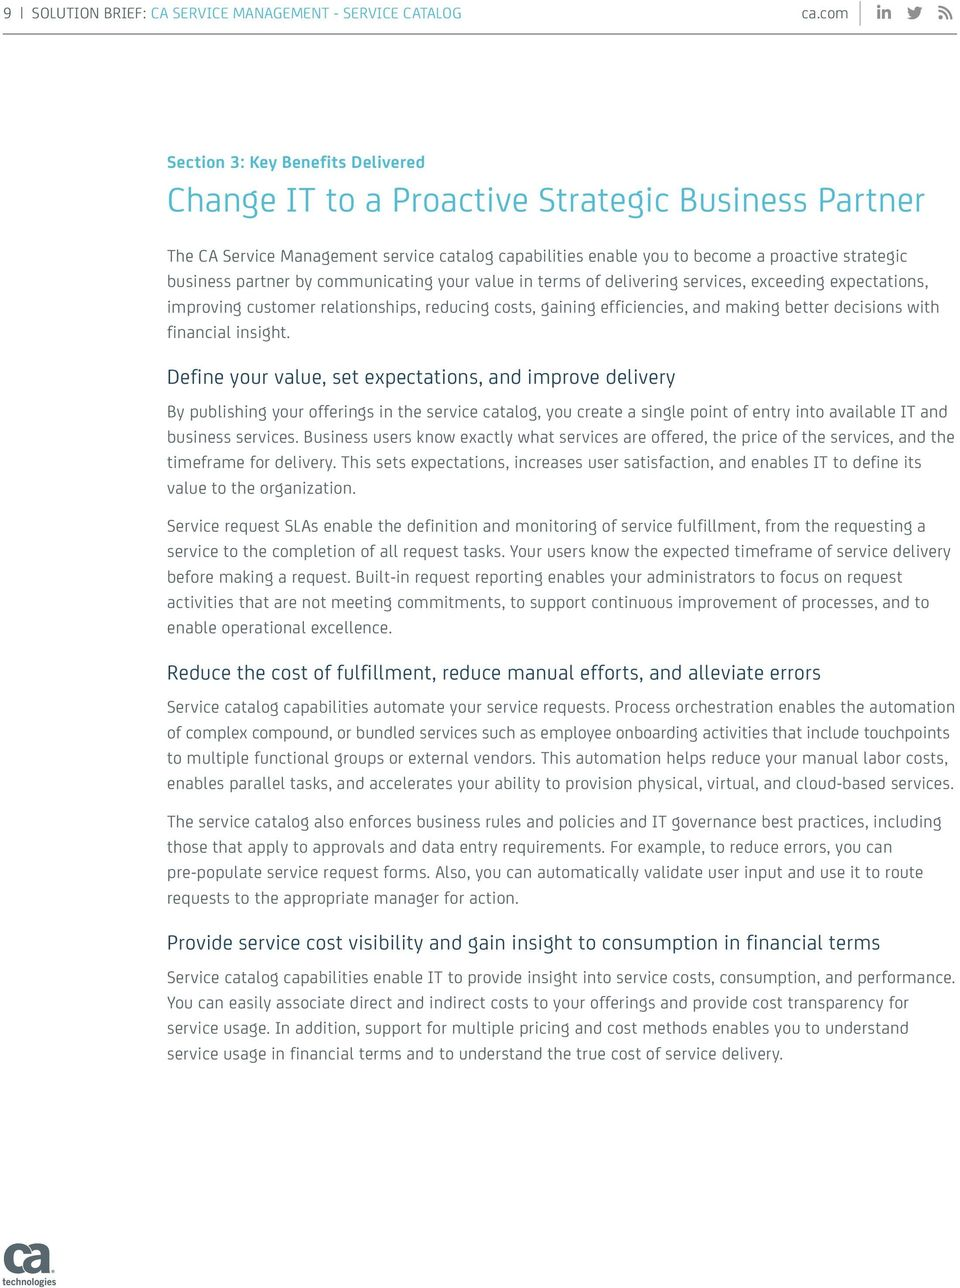 partner by communicating your value in terms of delivering services, exceeding expectations, improving customer relationships, reducing costs, gaining efficiencies, and making better decisions with